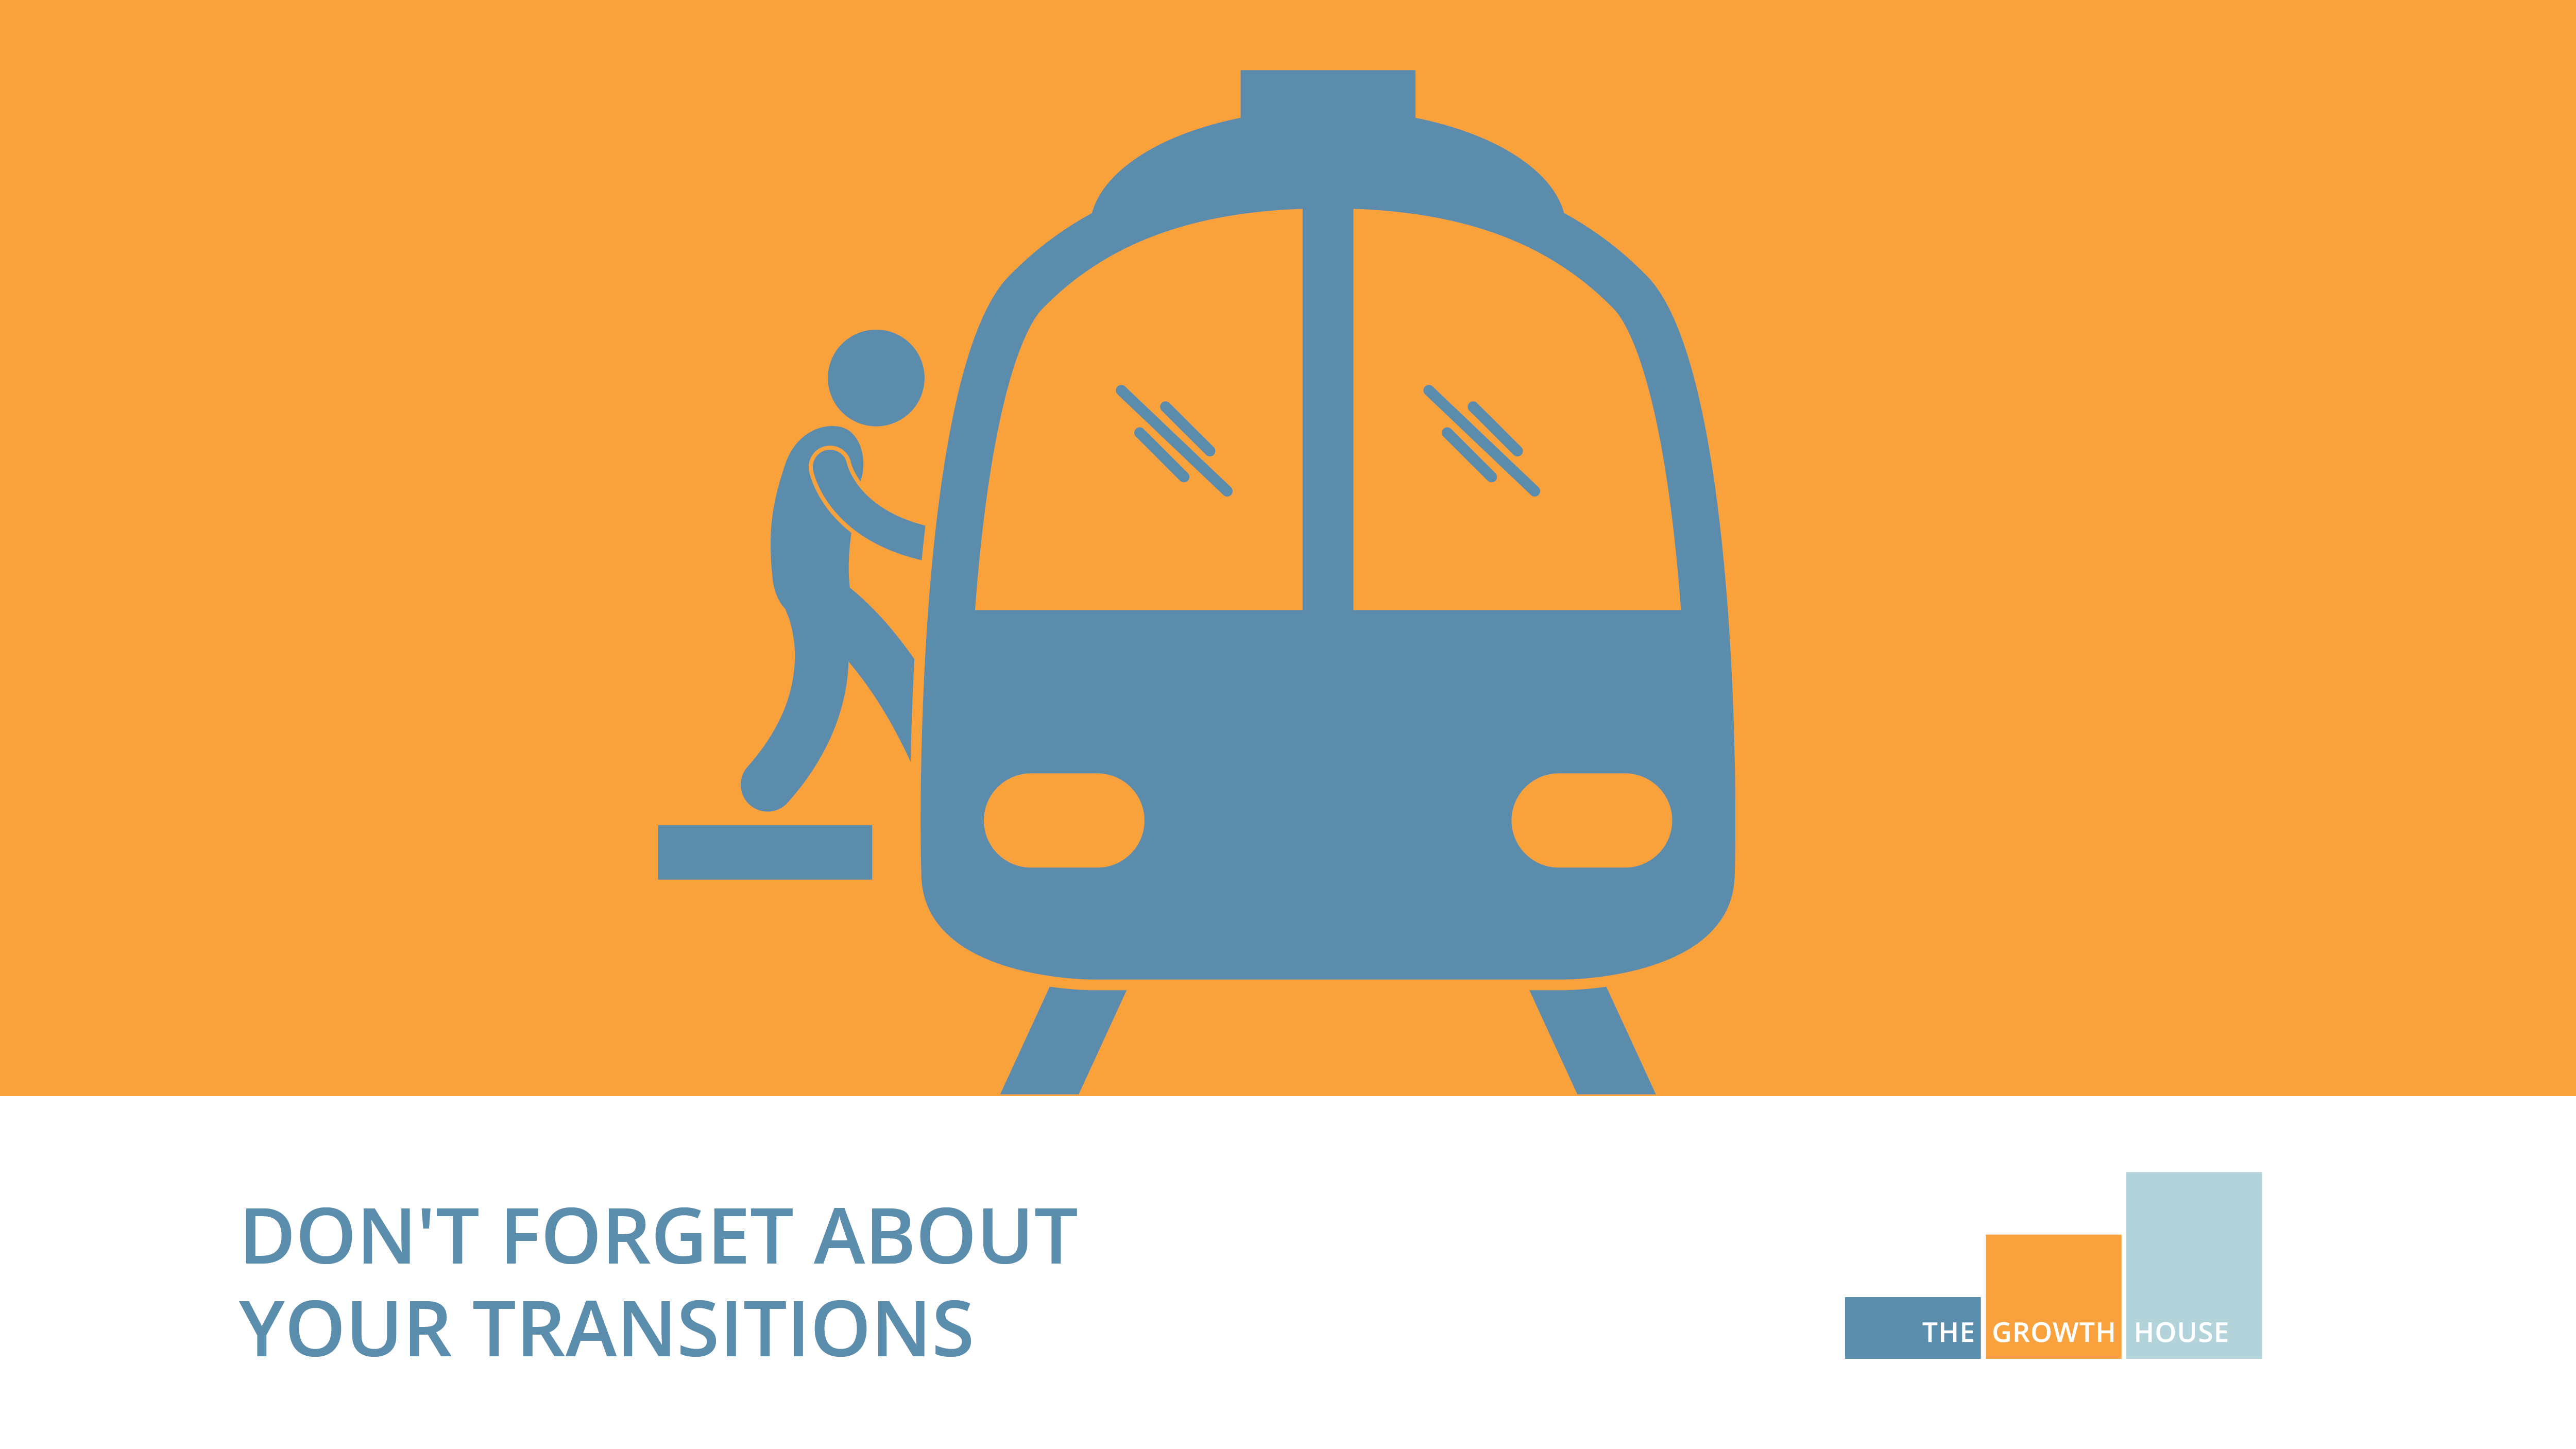 Don't forget about your transitions